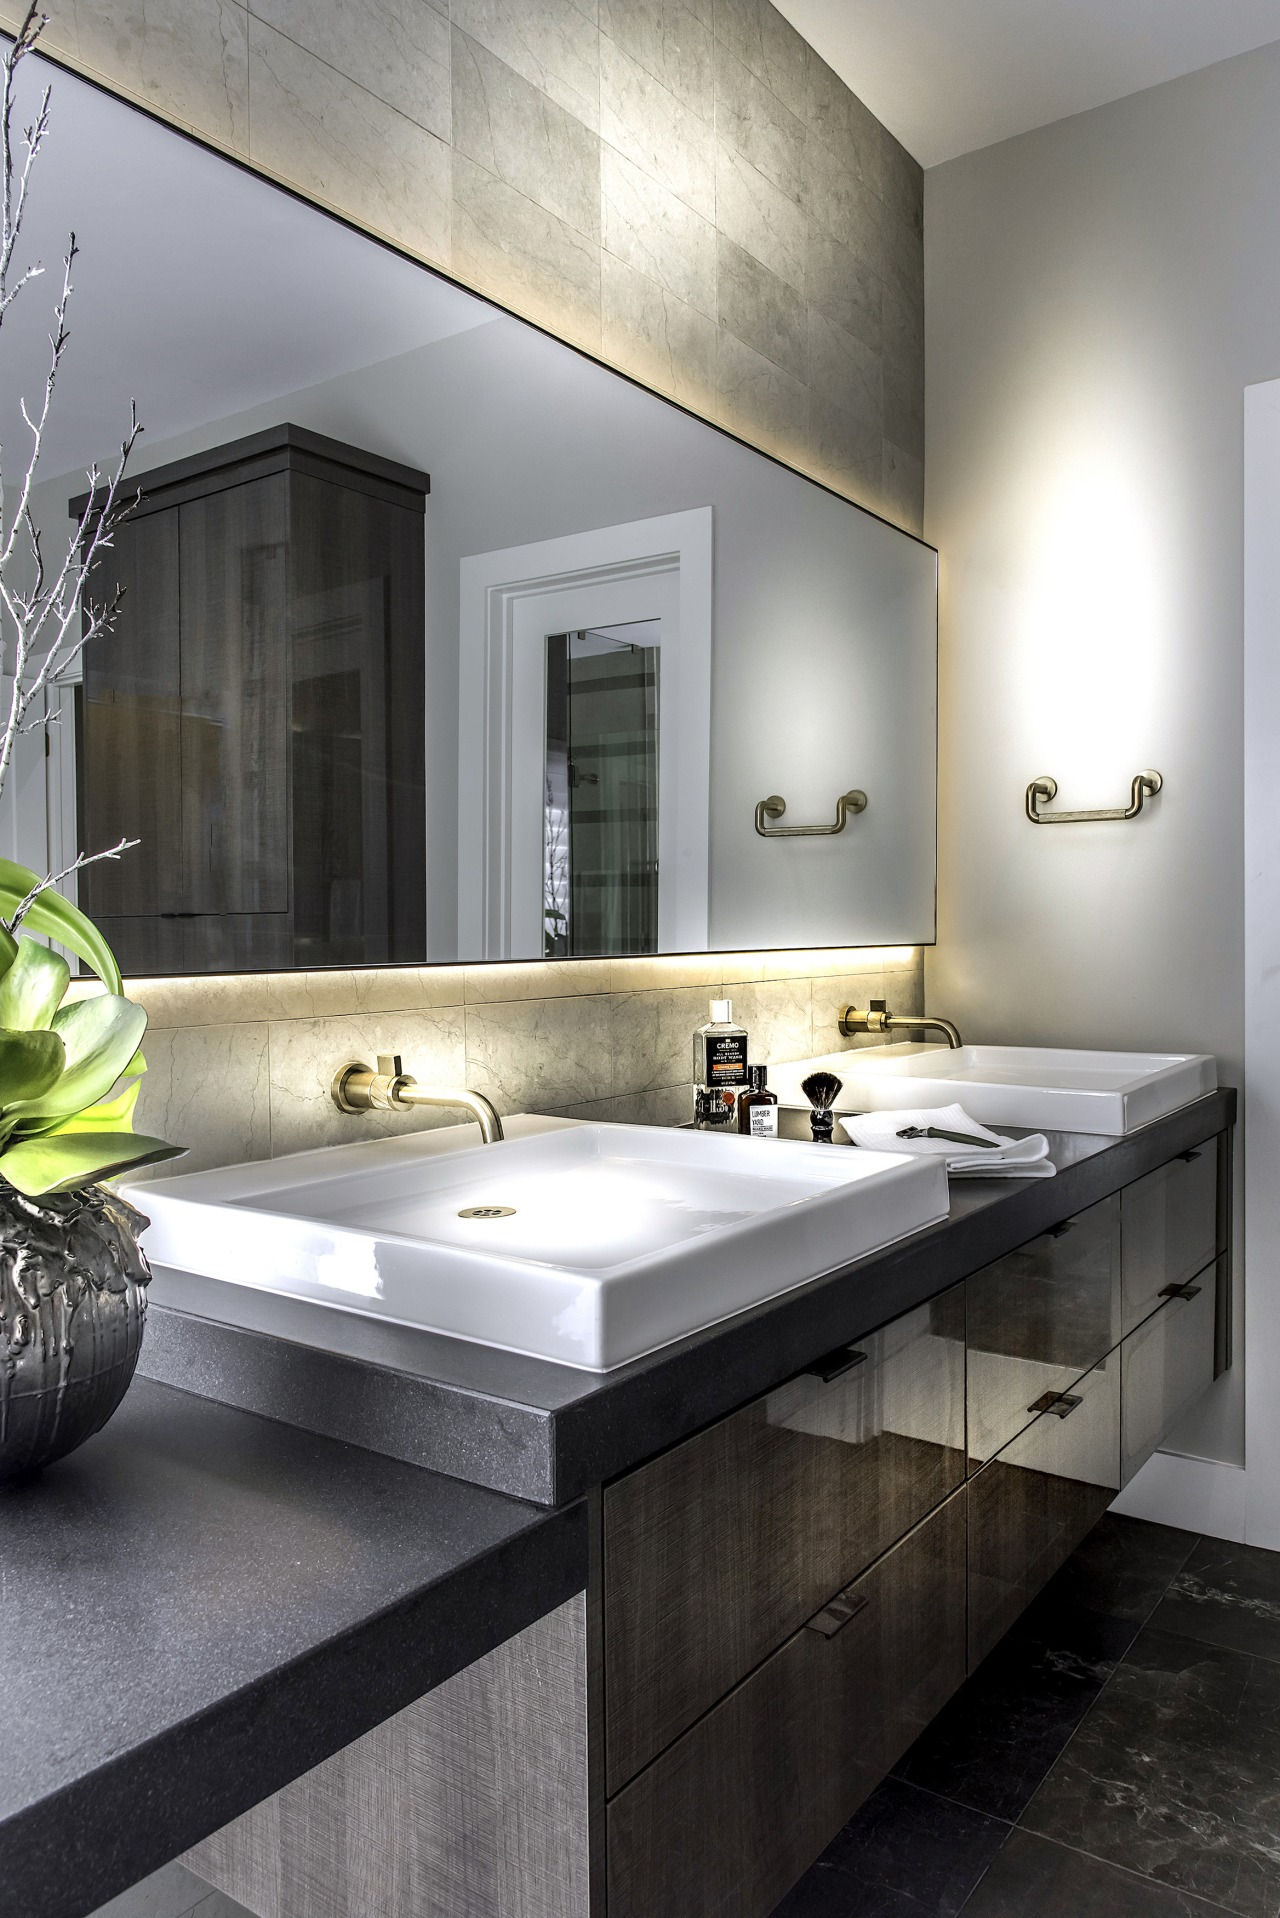 Textured tiles and a back-lit mirror add to